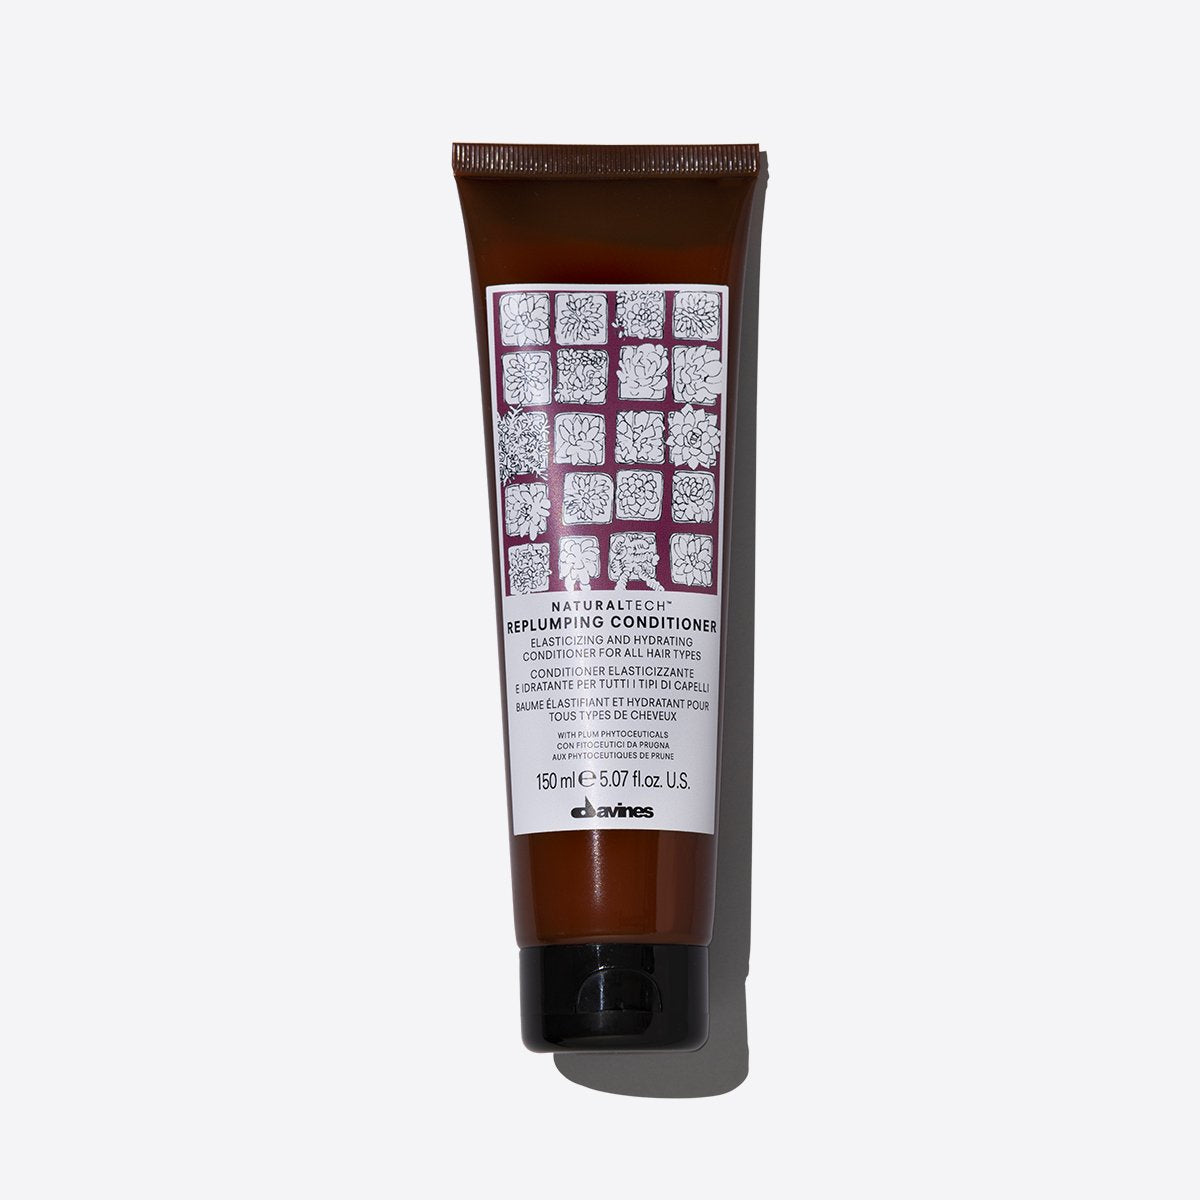 Naturaltech Replumping Conditioner by Davines